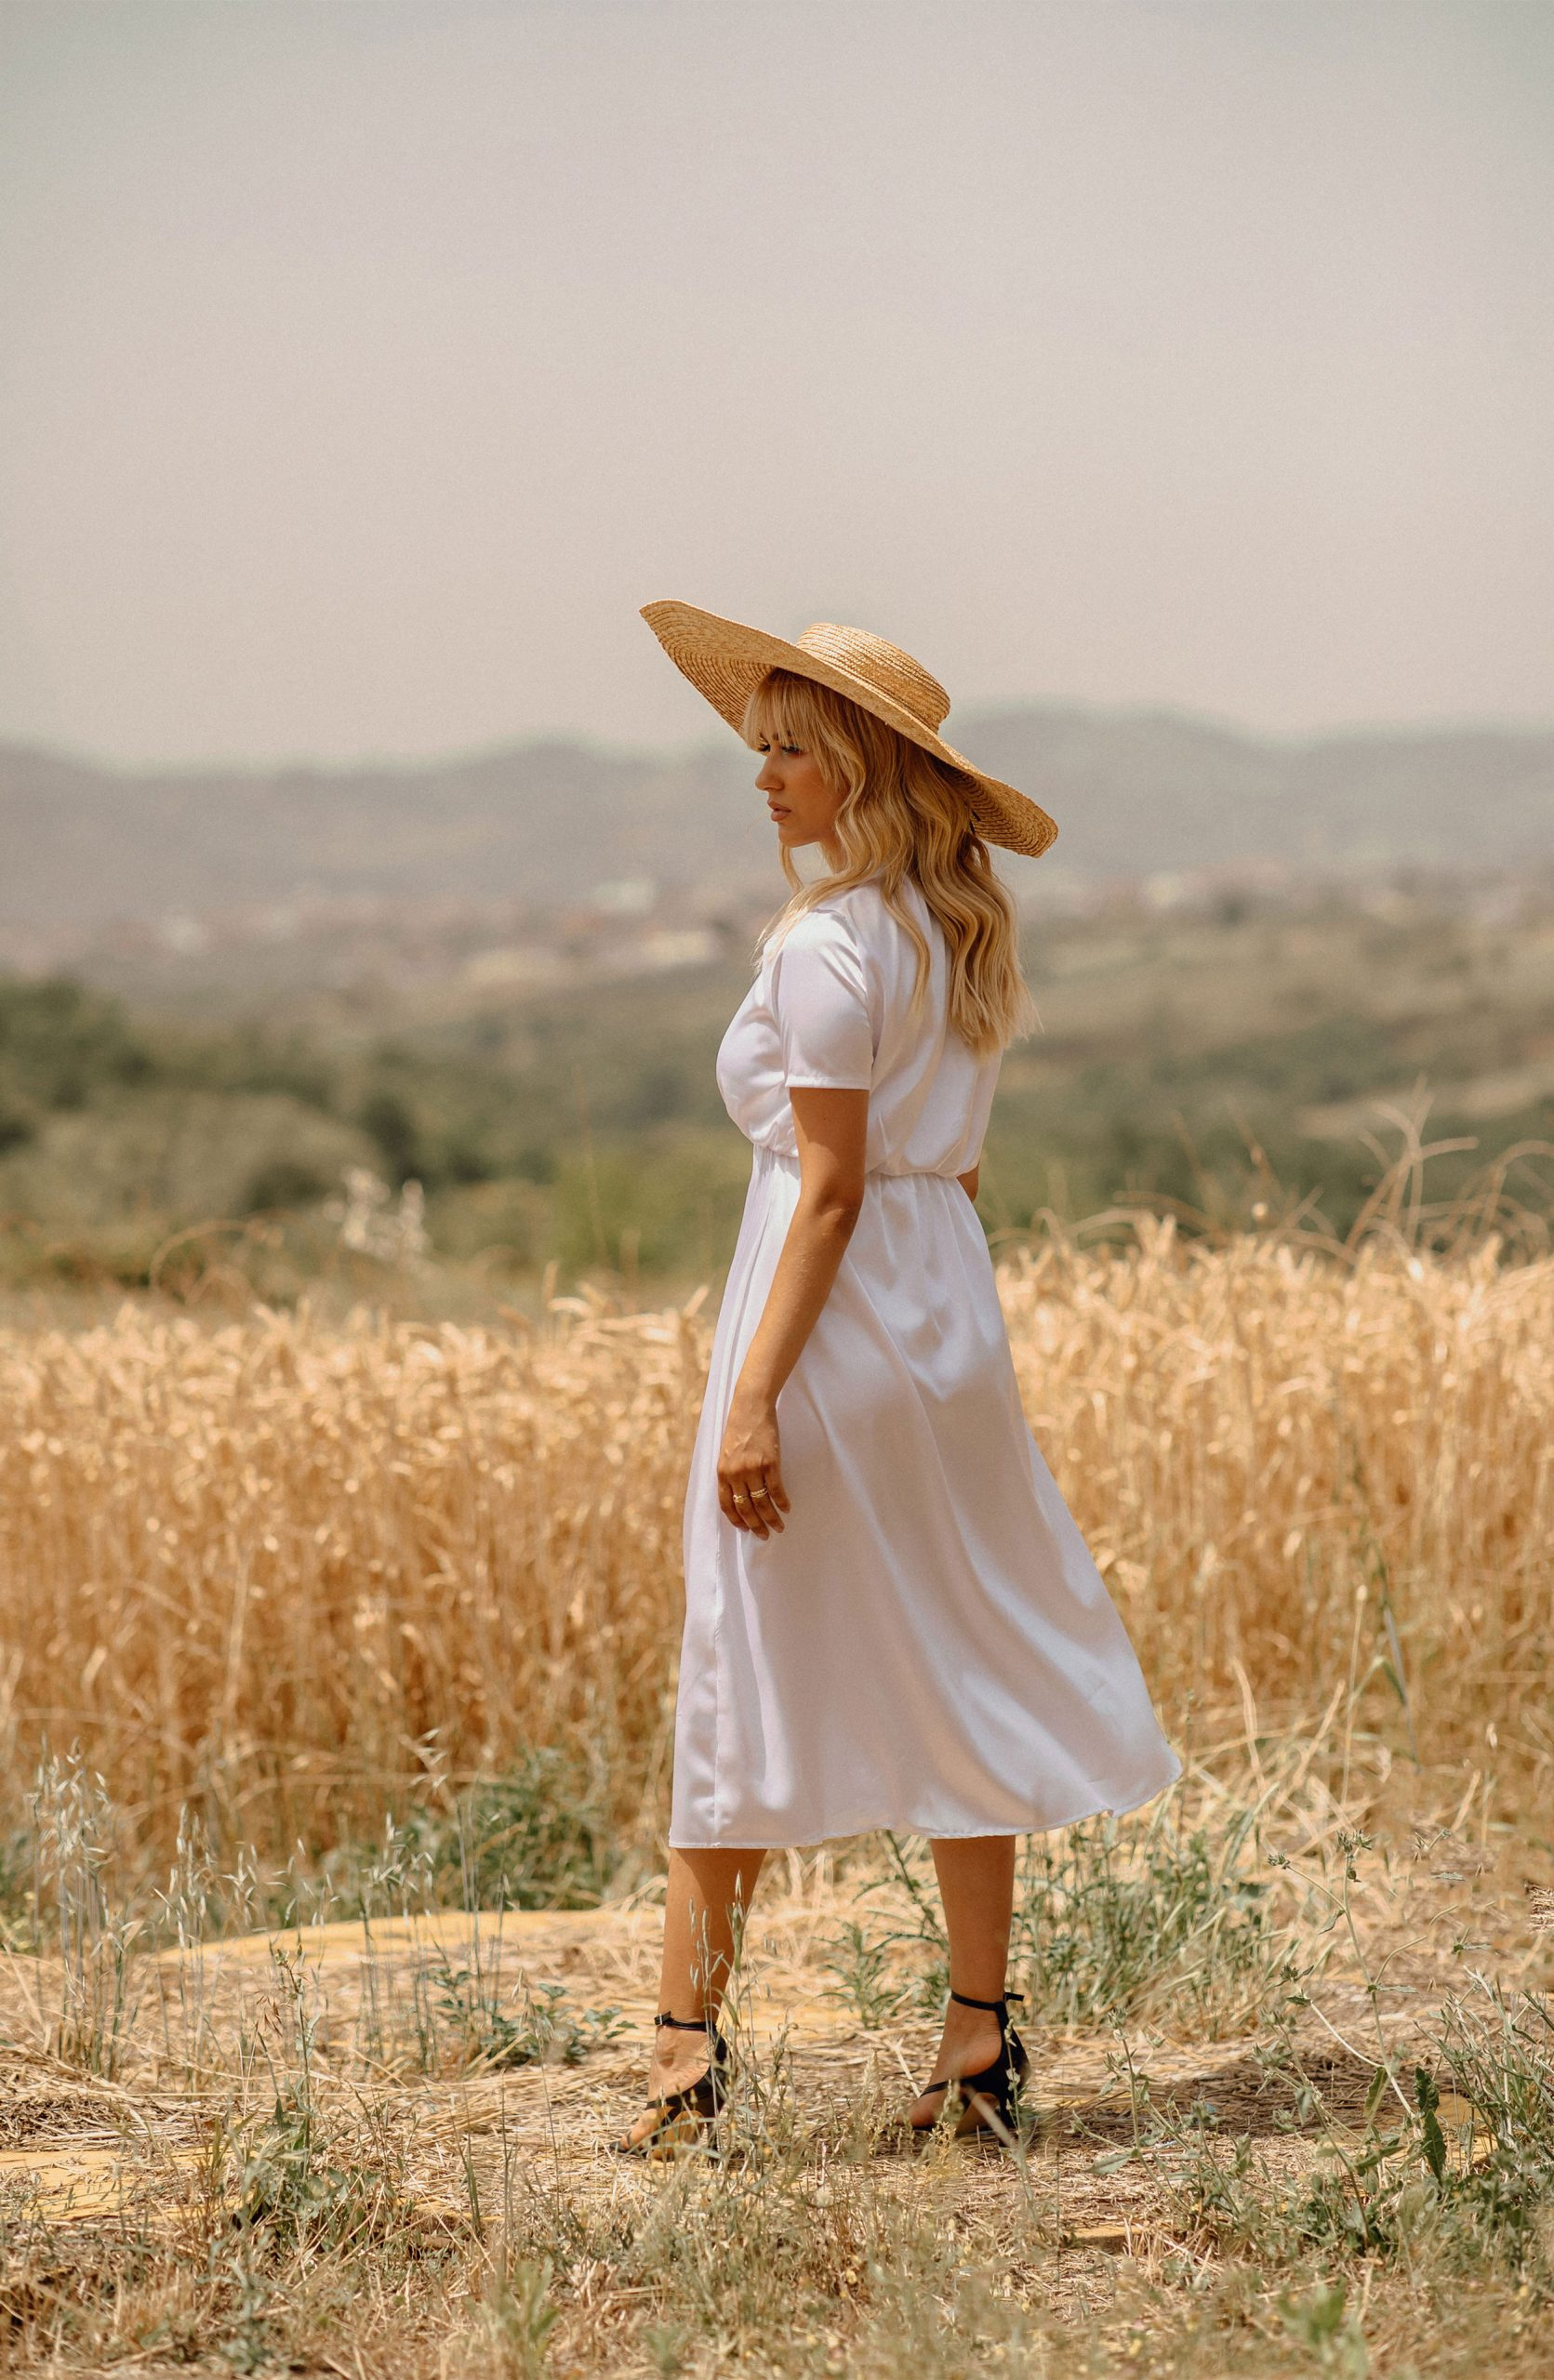 Blonde girl wearing a white dress and a hat in a Wheatfield